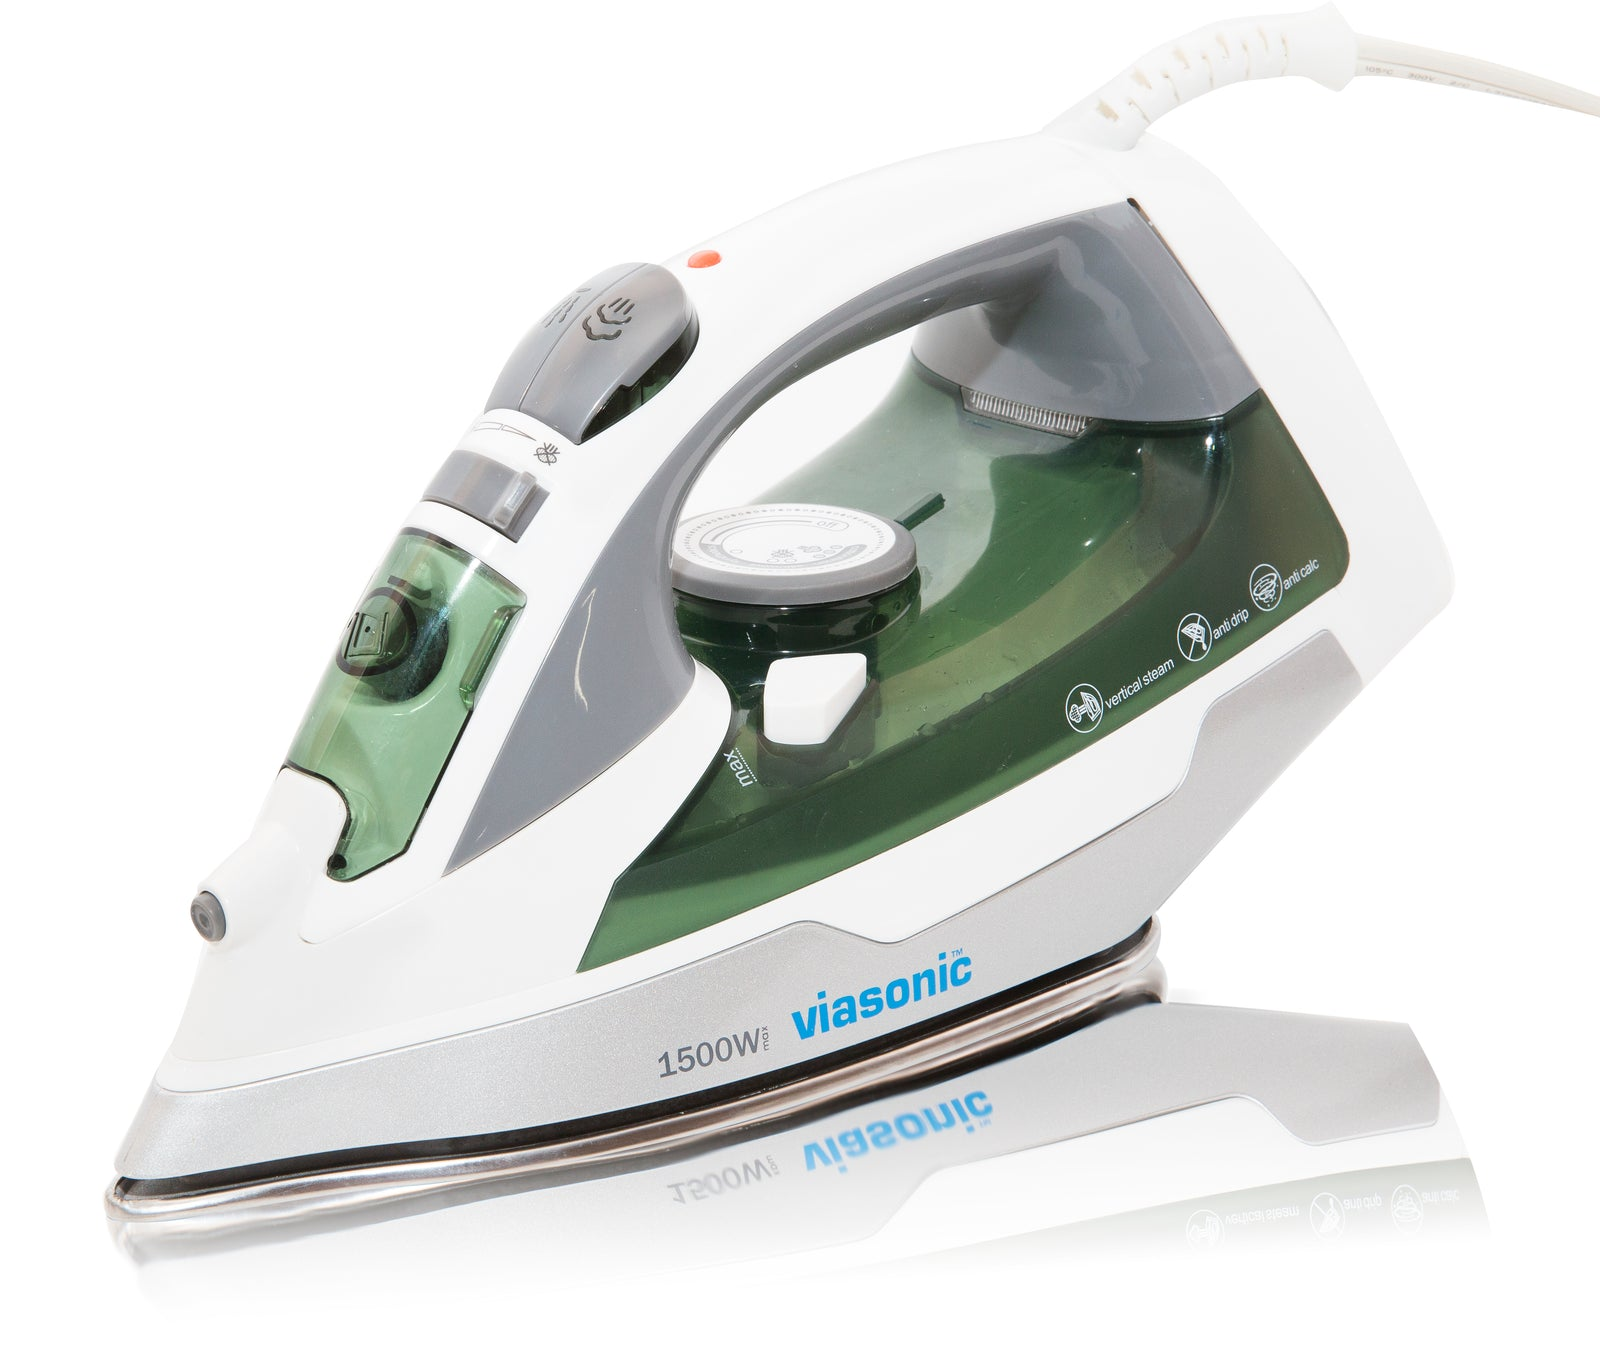 Viasonic Elite 1500W Steam Iron